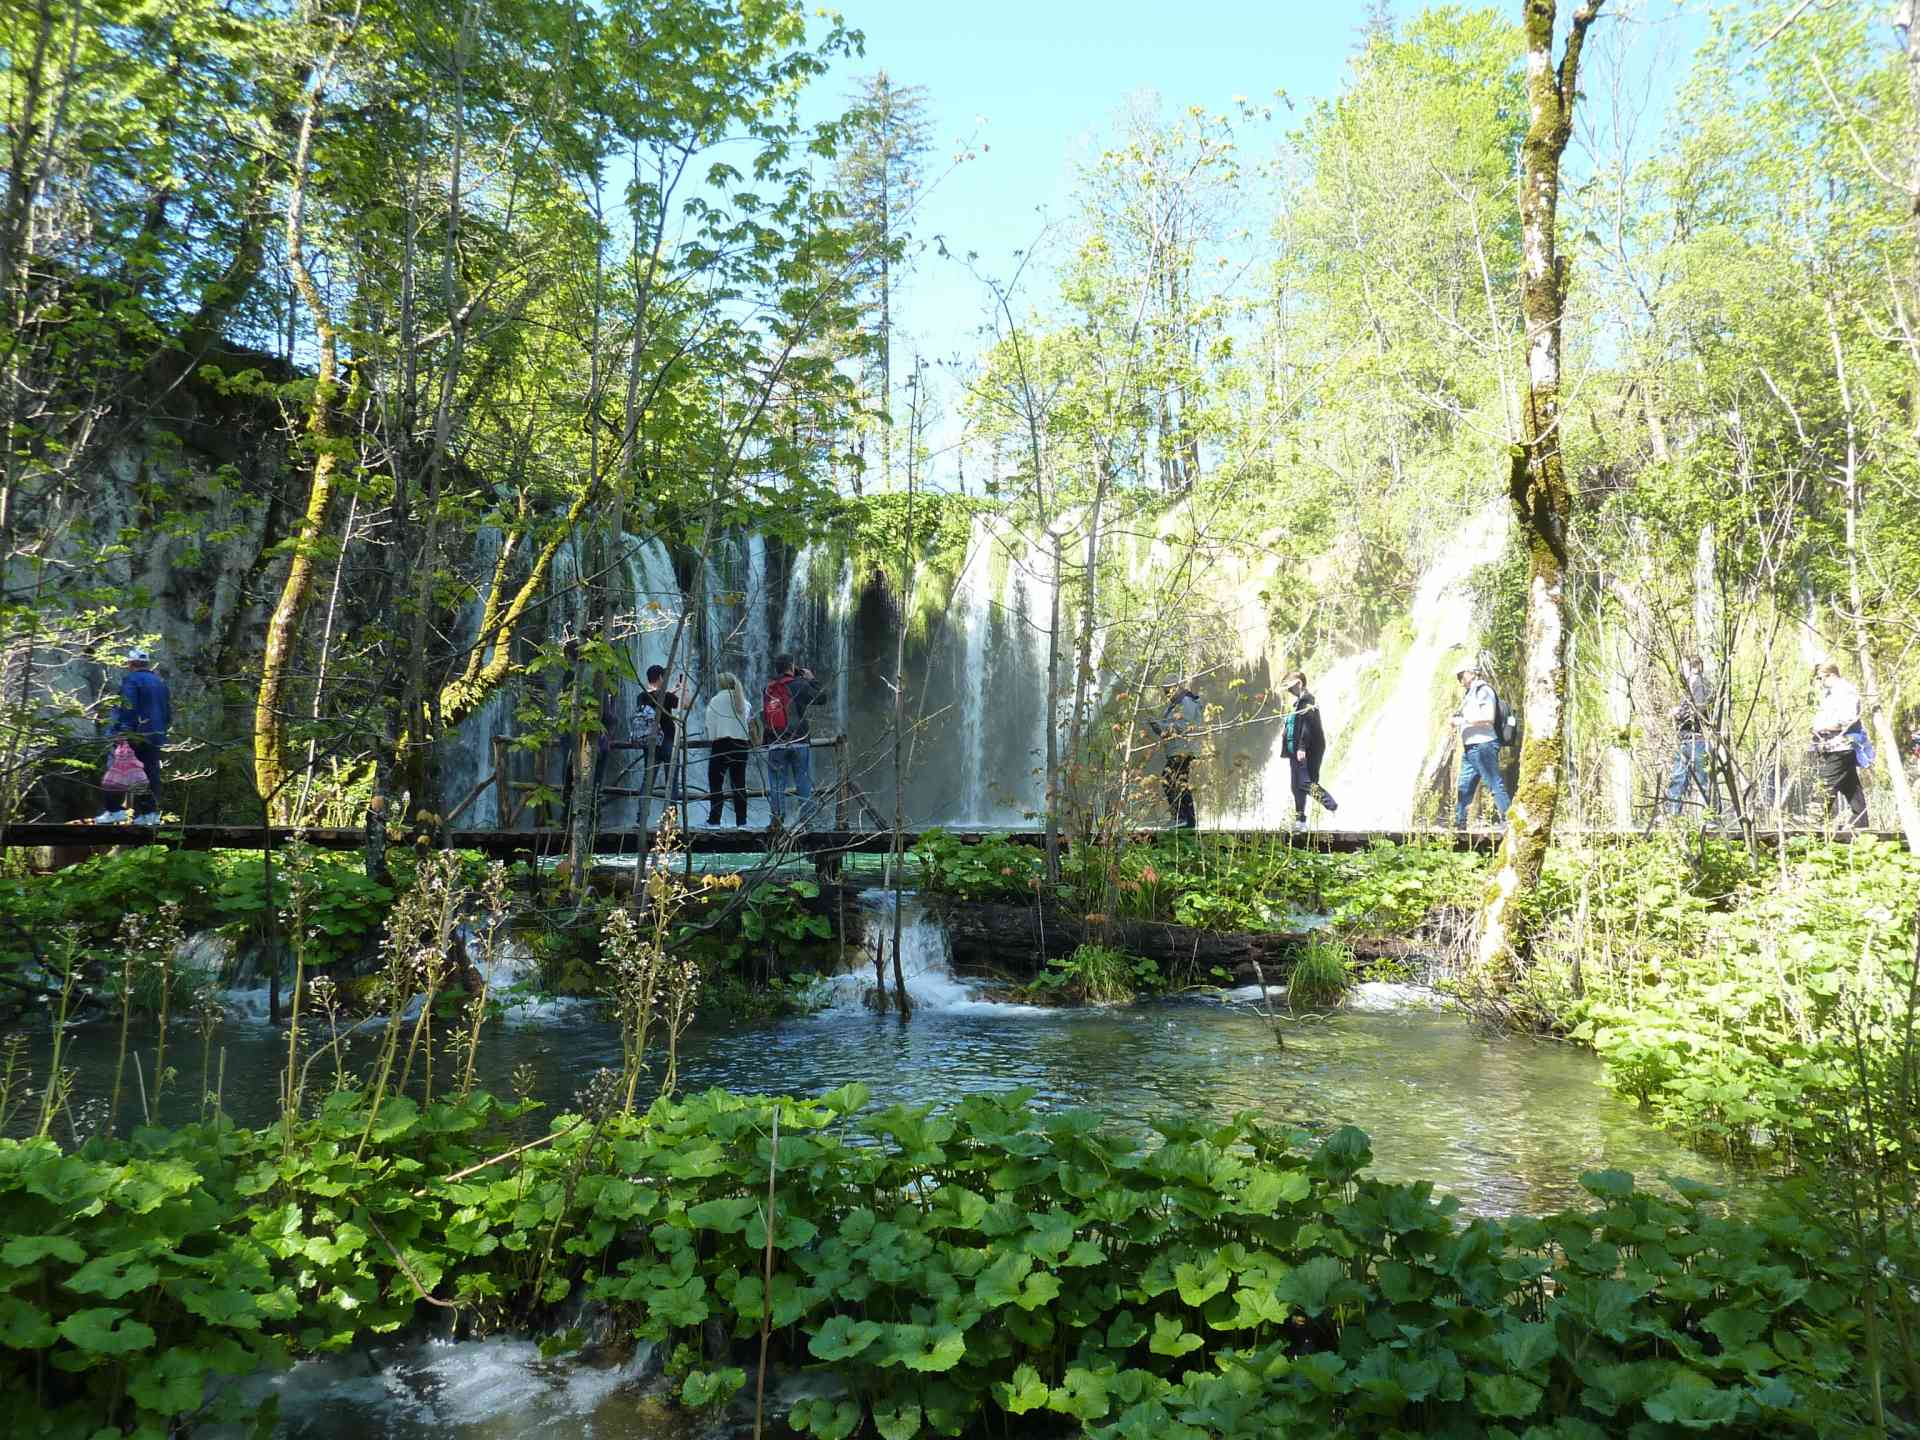 Congratulations to our July 2019 photo competition winner John W for this awesome shot of the stunning Plitvice Lakes on our Jewels of Dalmatia tour!